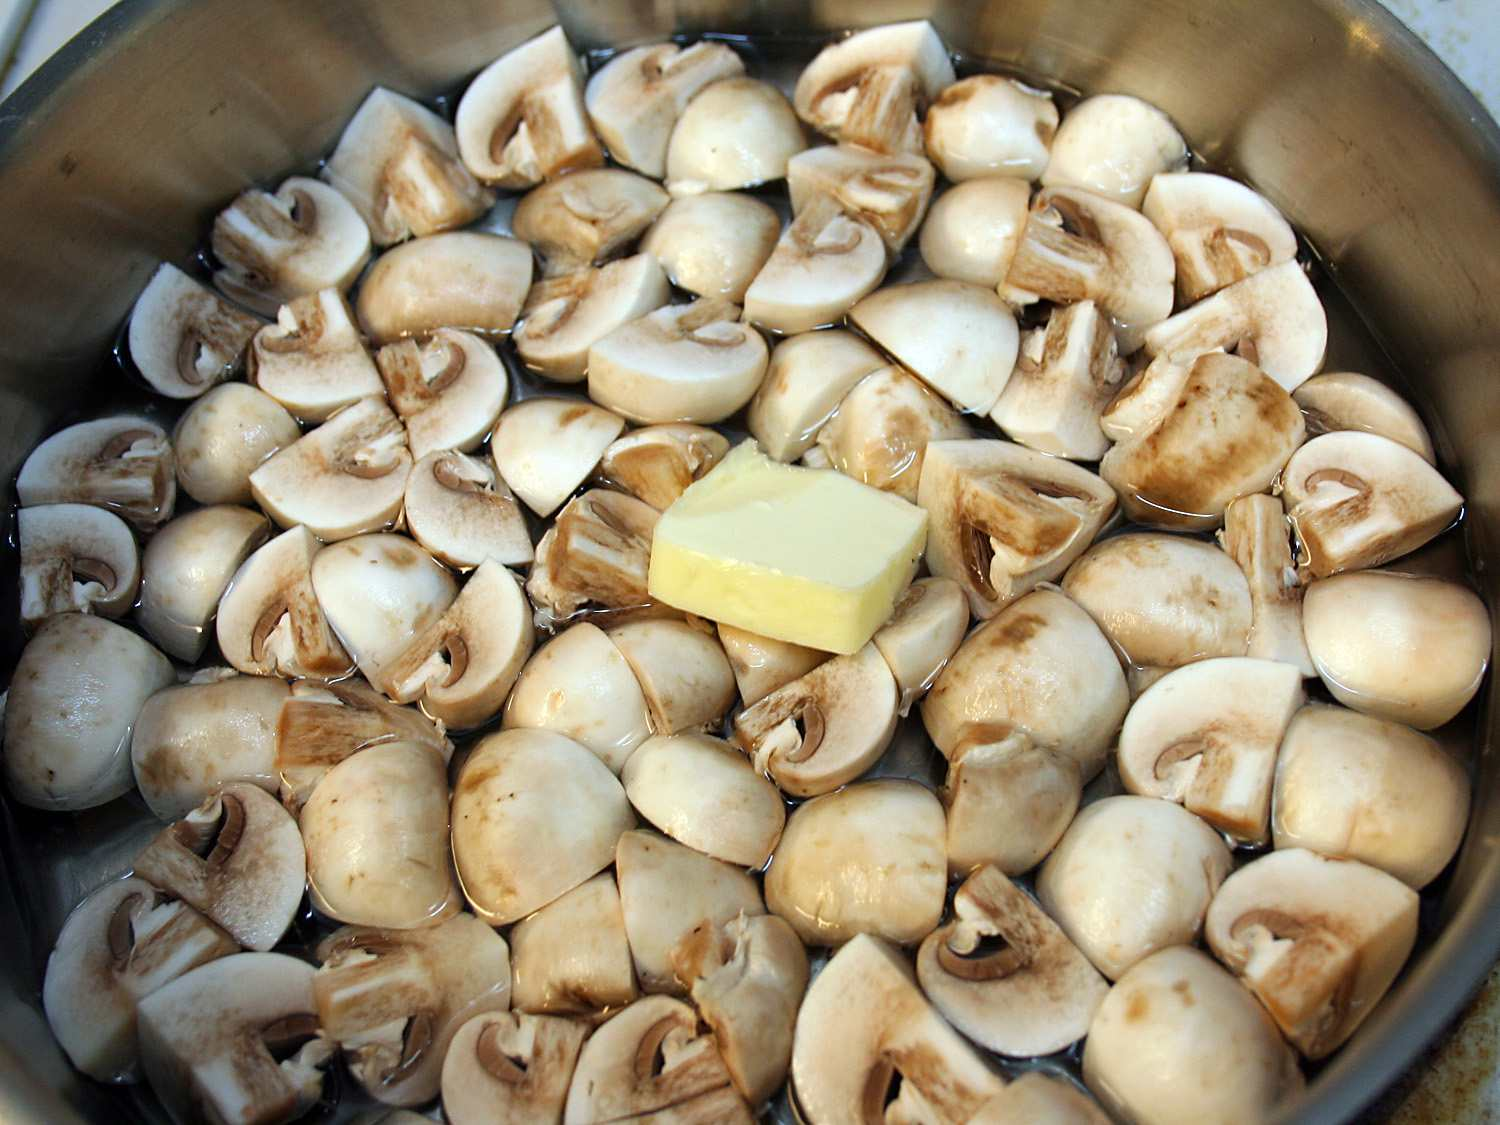 Wet crowded mushrooms with butter